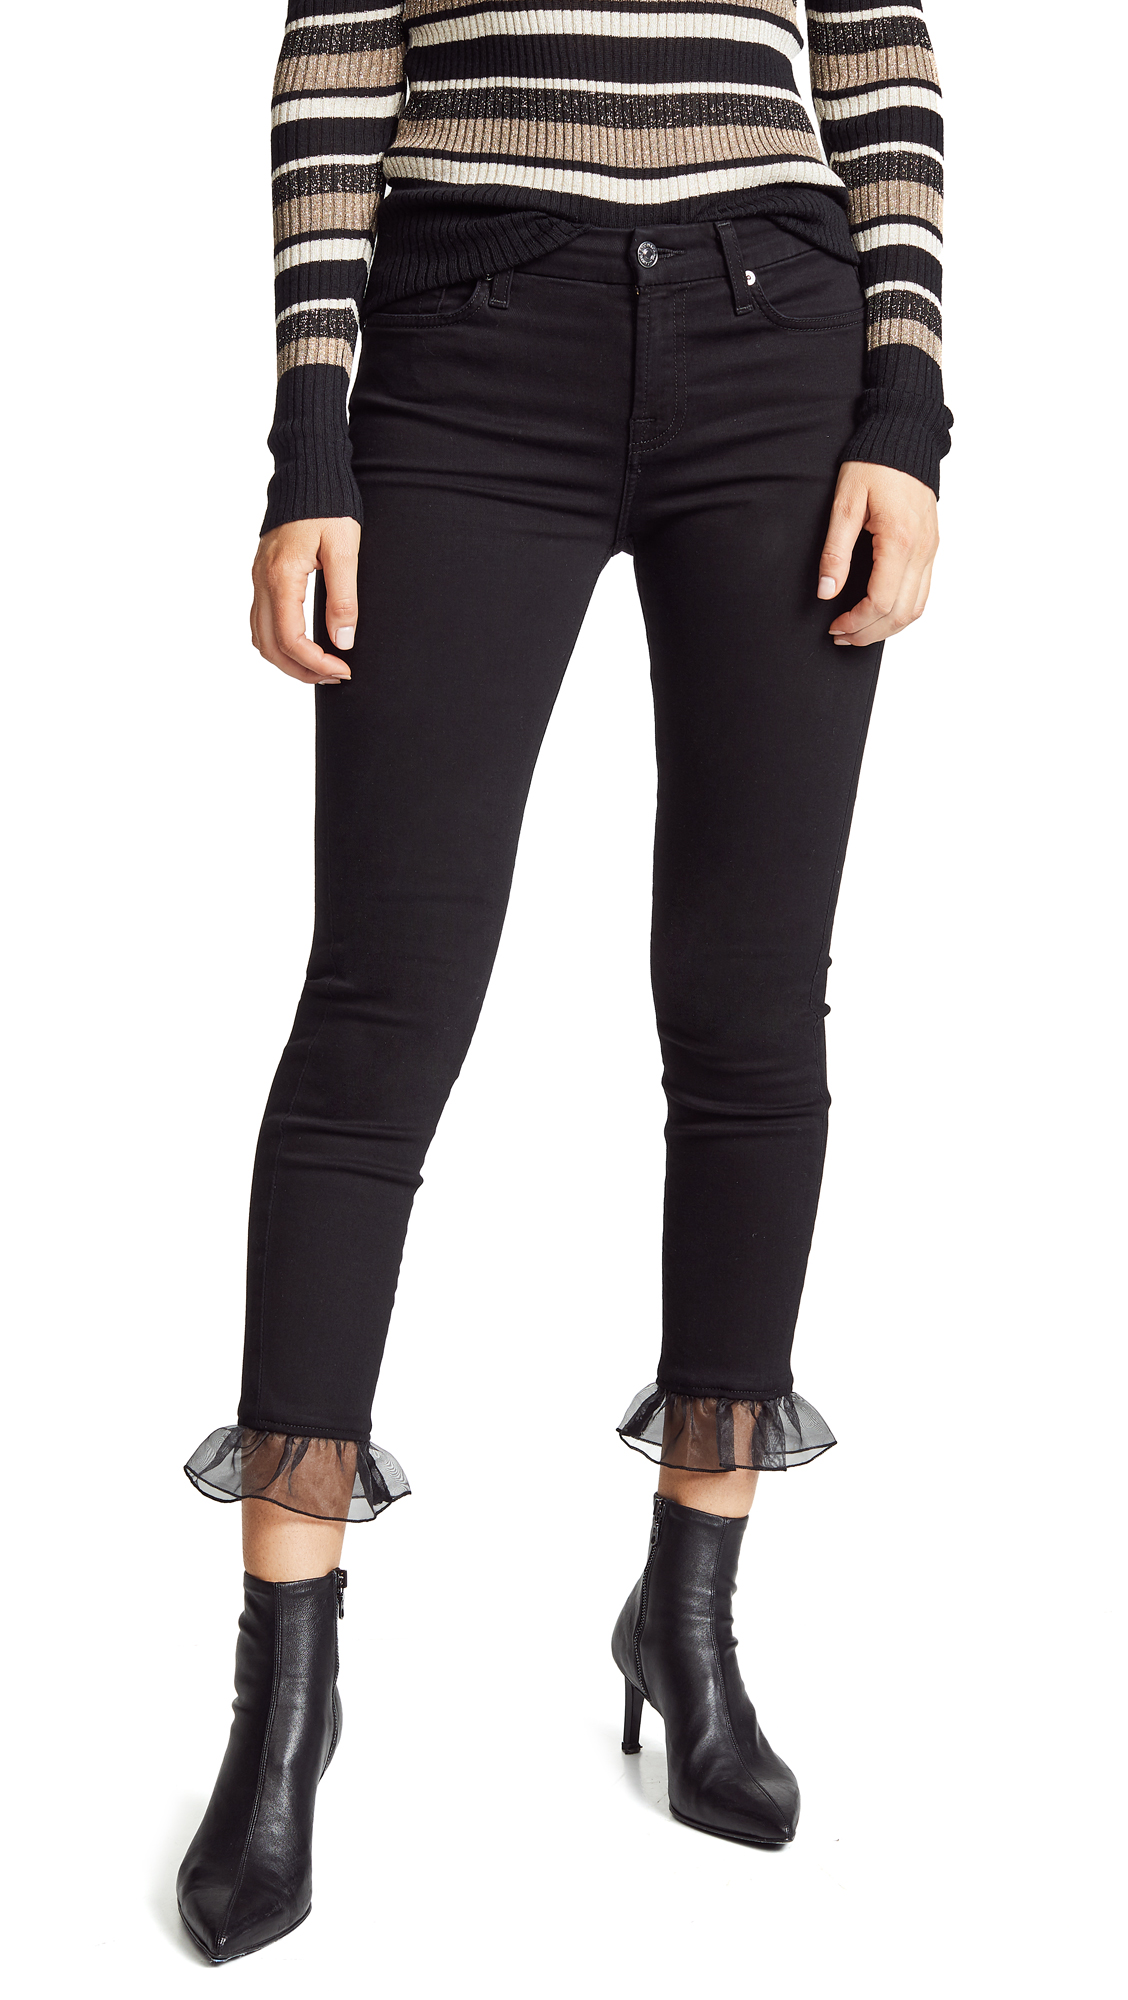 7 For All Mankind The Ankle Skinny Jeans with Organza Hem - B(Air) Black